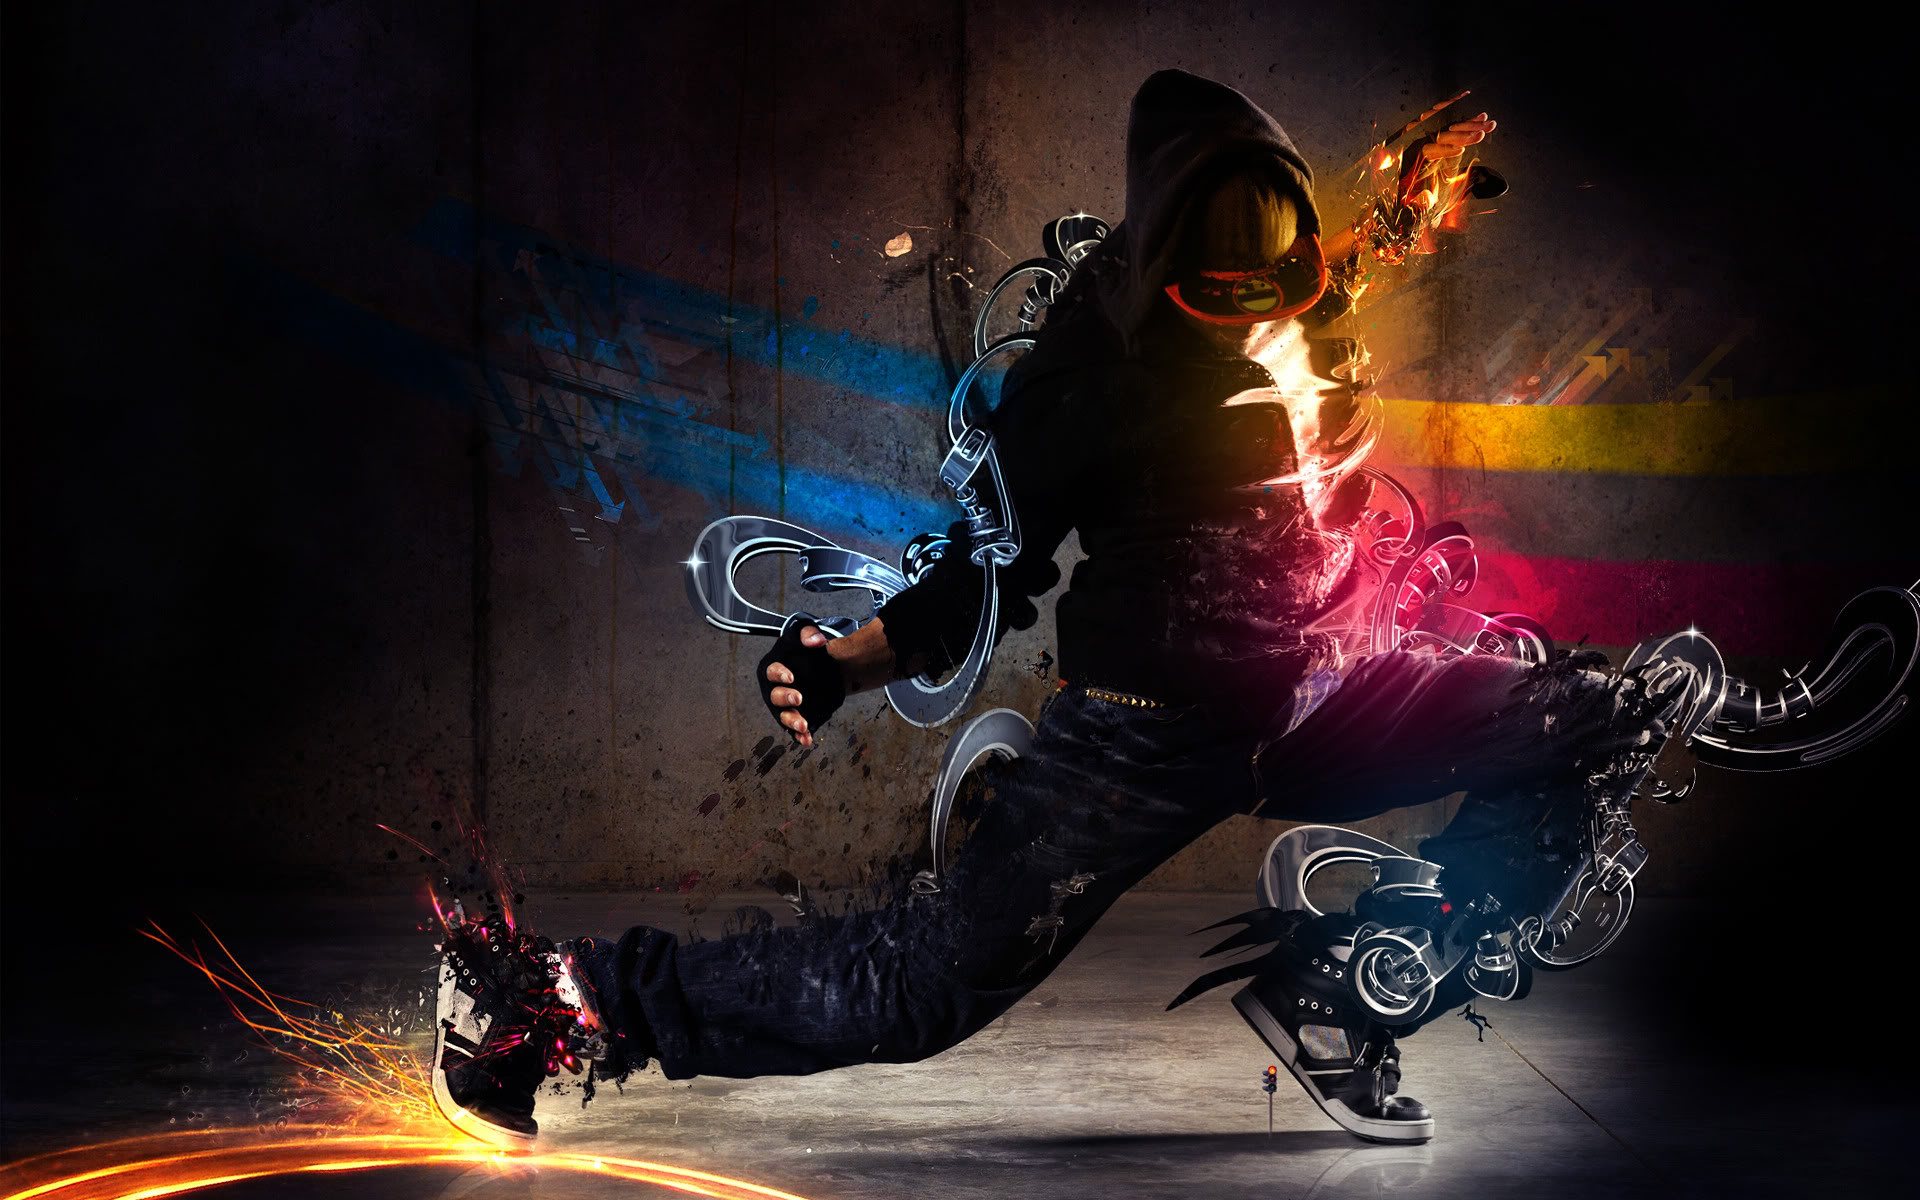 image - 8774886-cool-hd-wallpapers-for-boys-break-dance